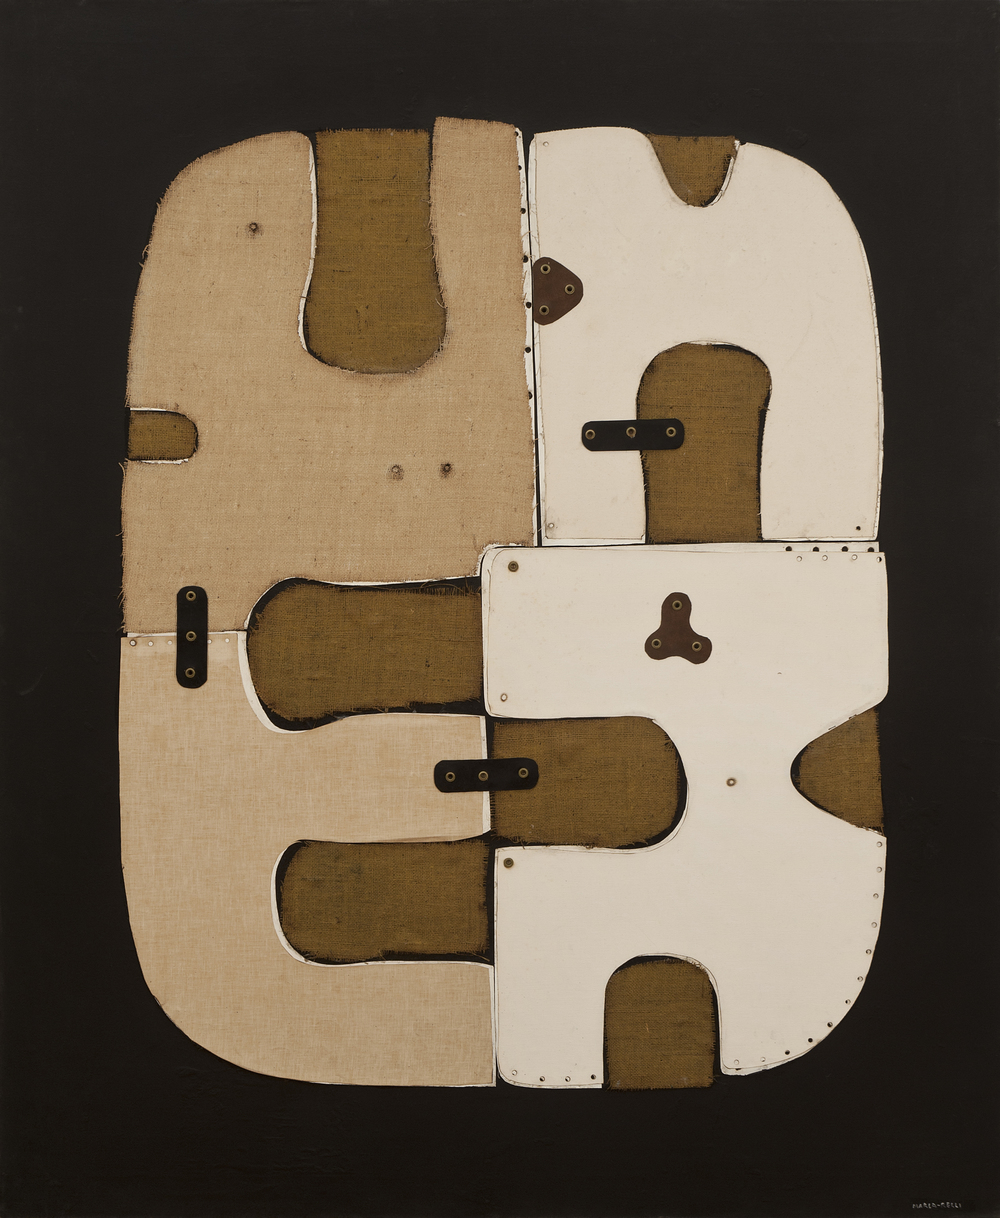 SOLD XL-20-70, 1970, collage on canvas, 69 x 57 inches